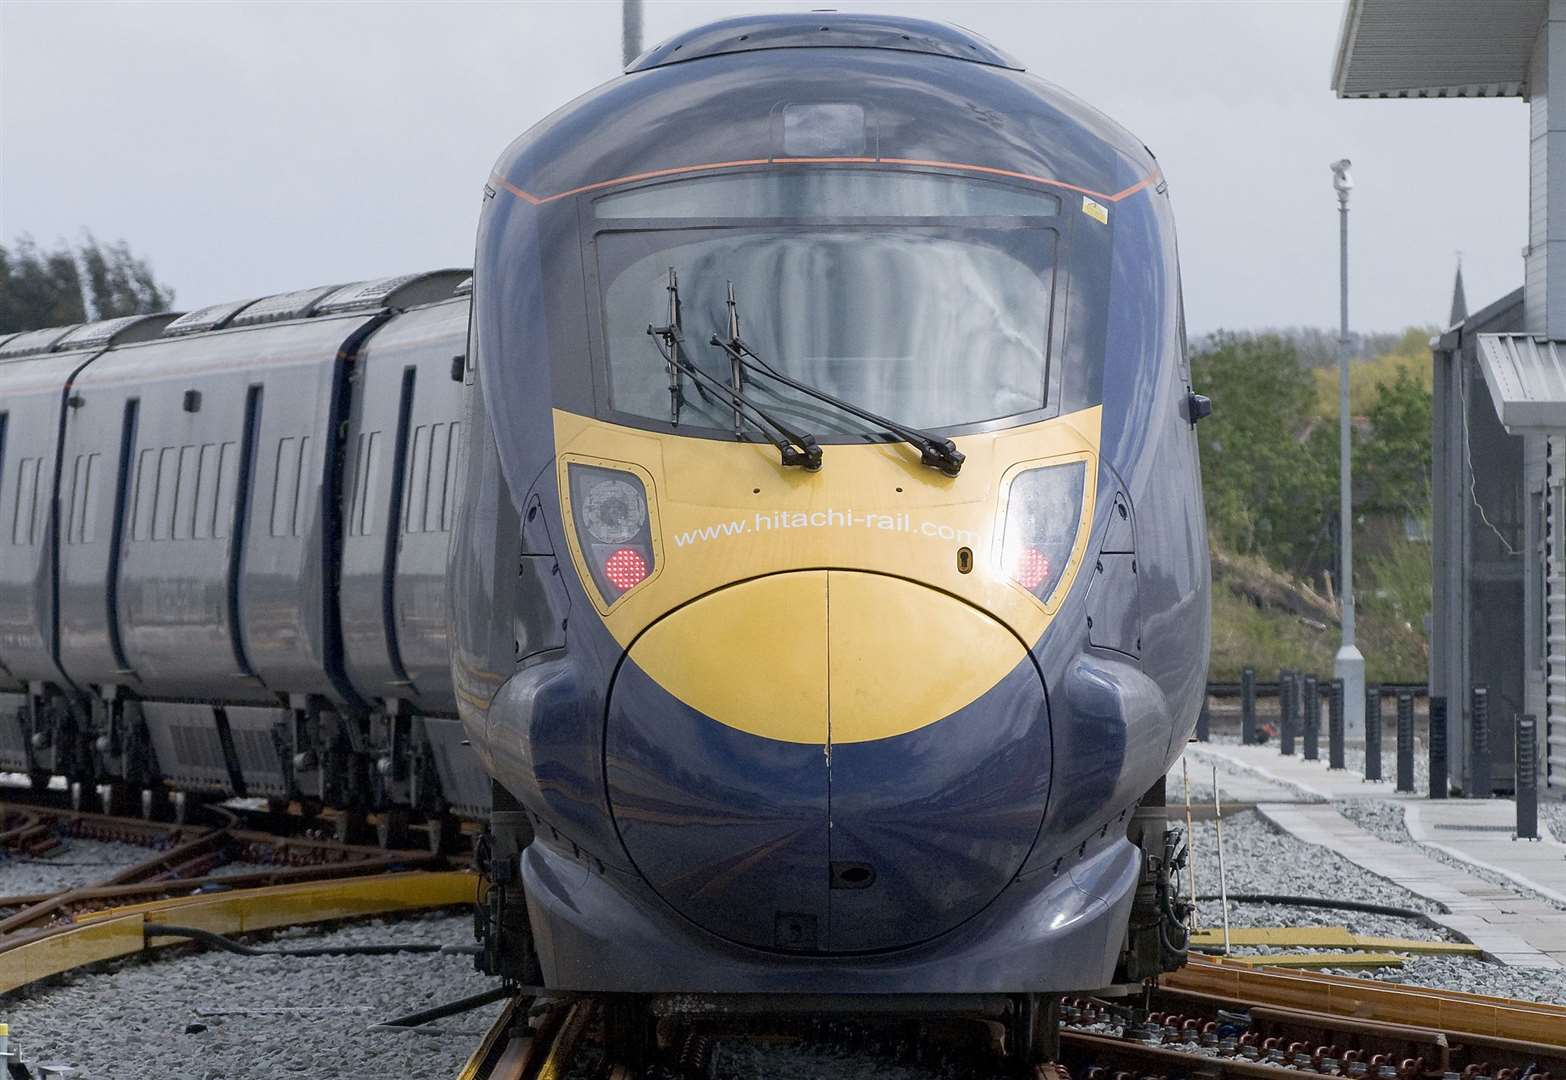 'High-speed network needs more trains'